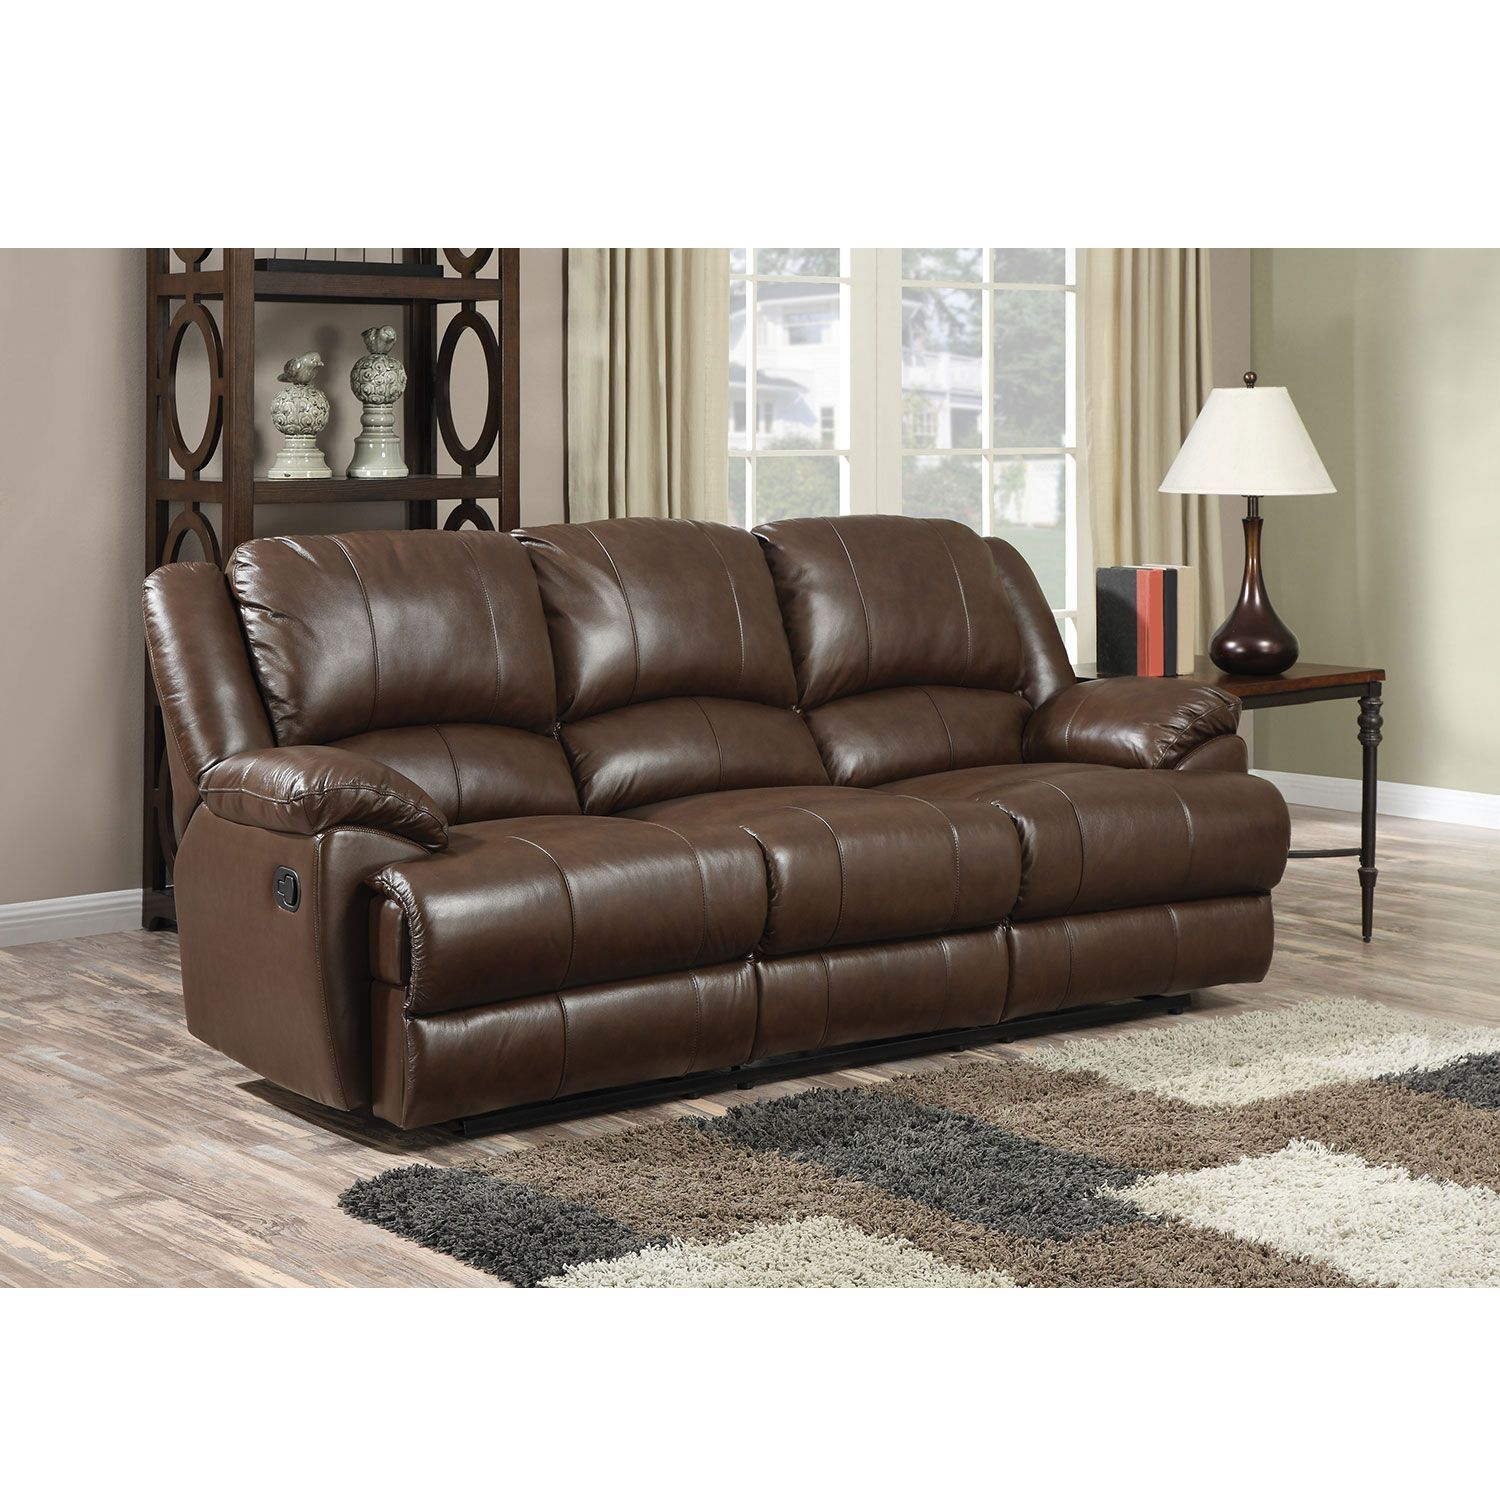 O Connor Leather Motion Sofa Brown Leather Couch Sofa Leather Sofa